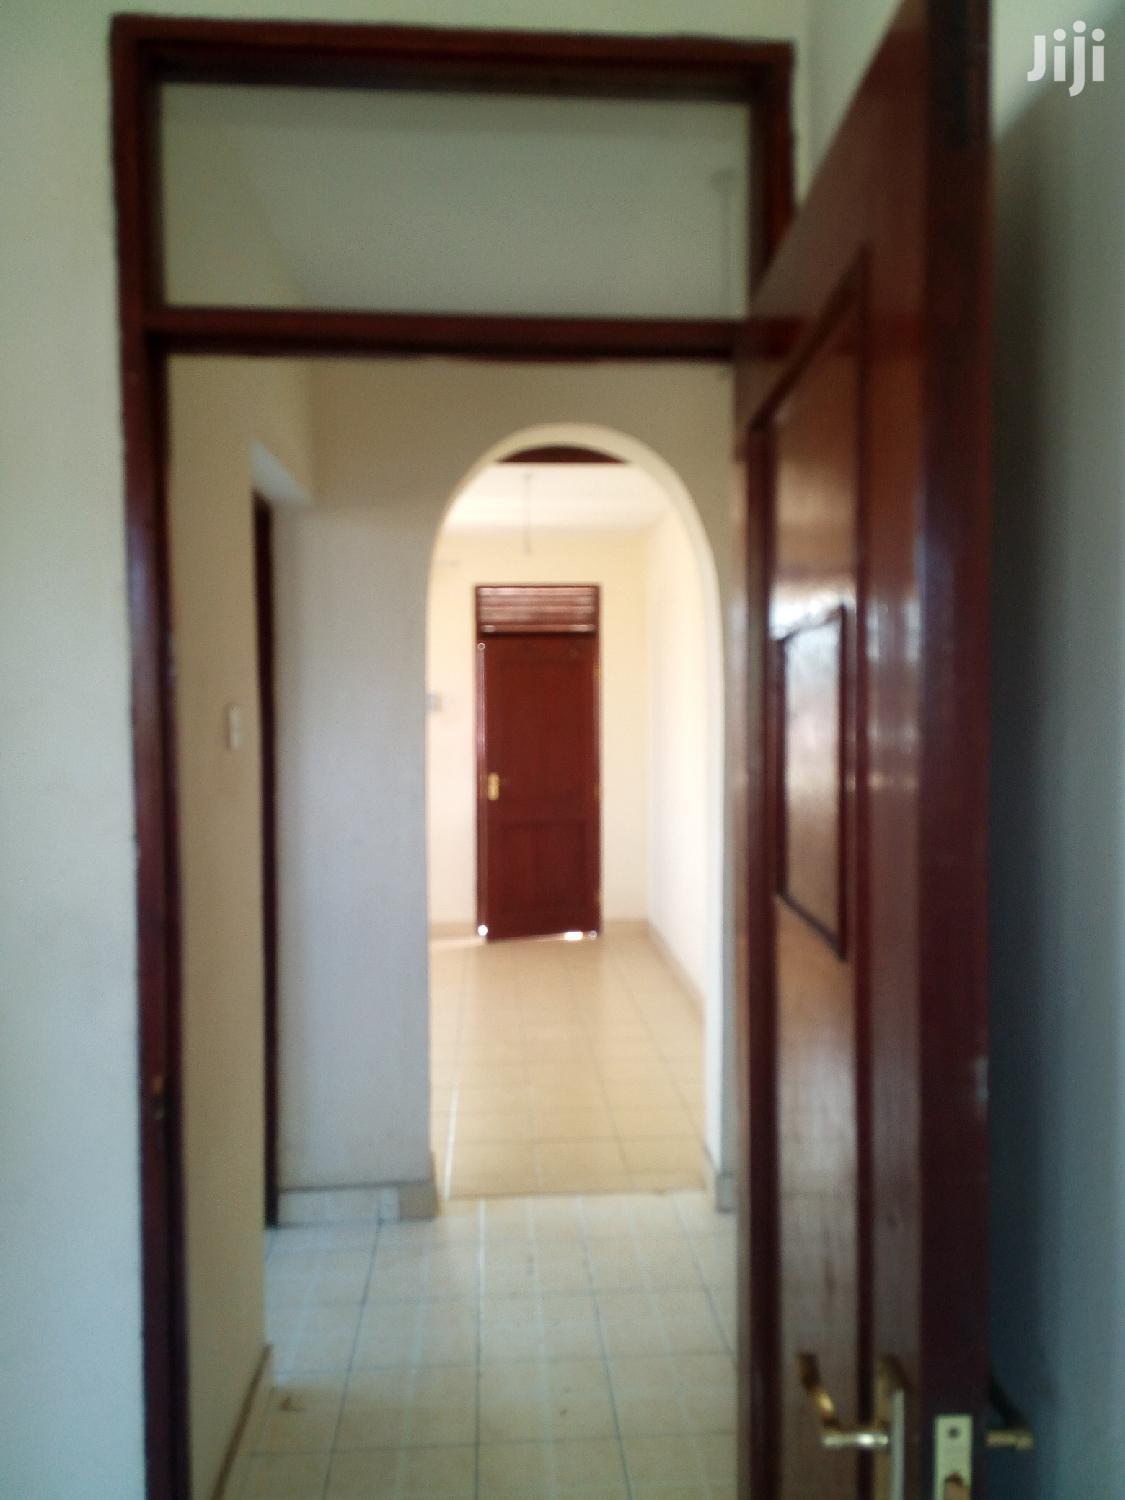 Smart One Bedroom Apartment To Let At Shanzu | Houses & Apartments For Rent for sale in Kisauni, Mombasa, Kenya